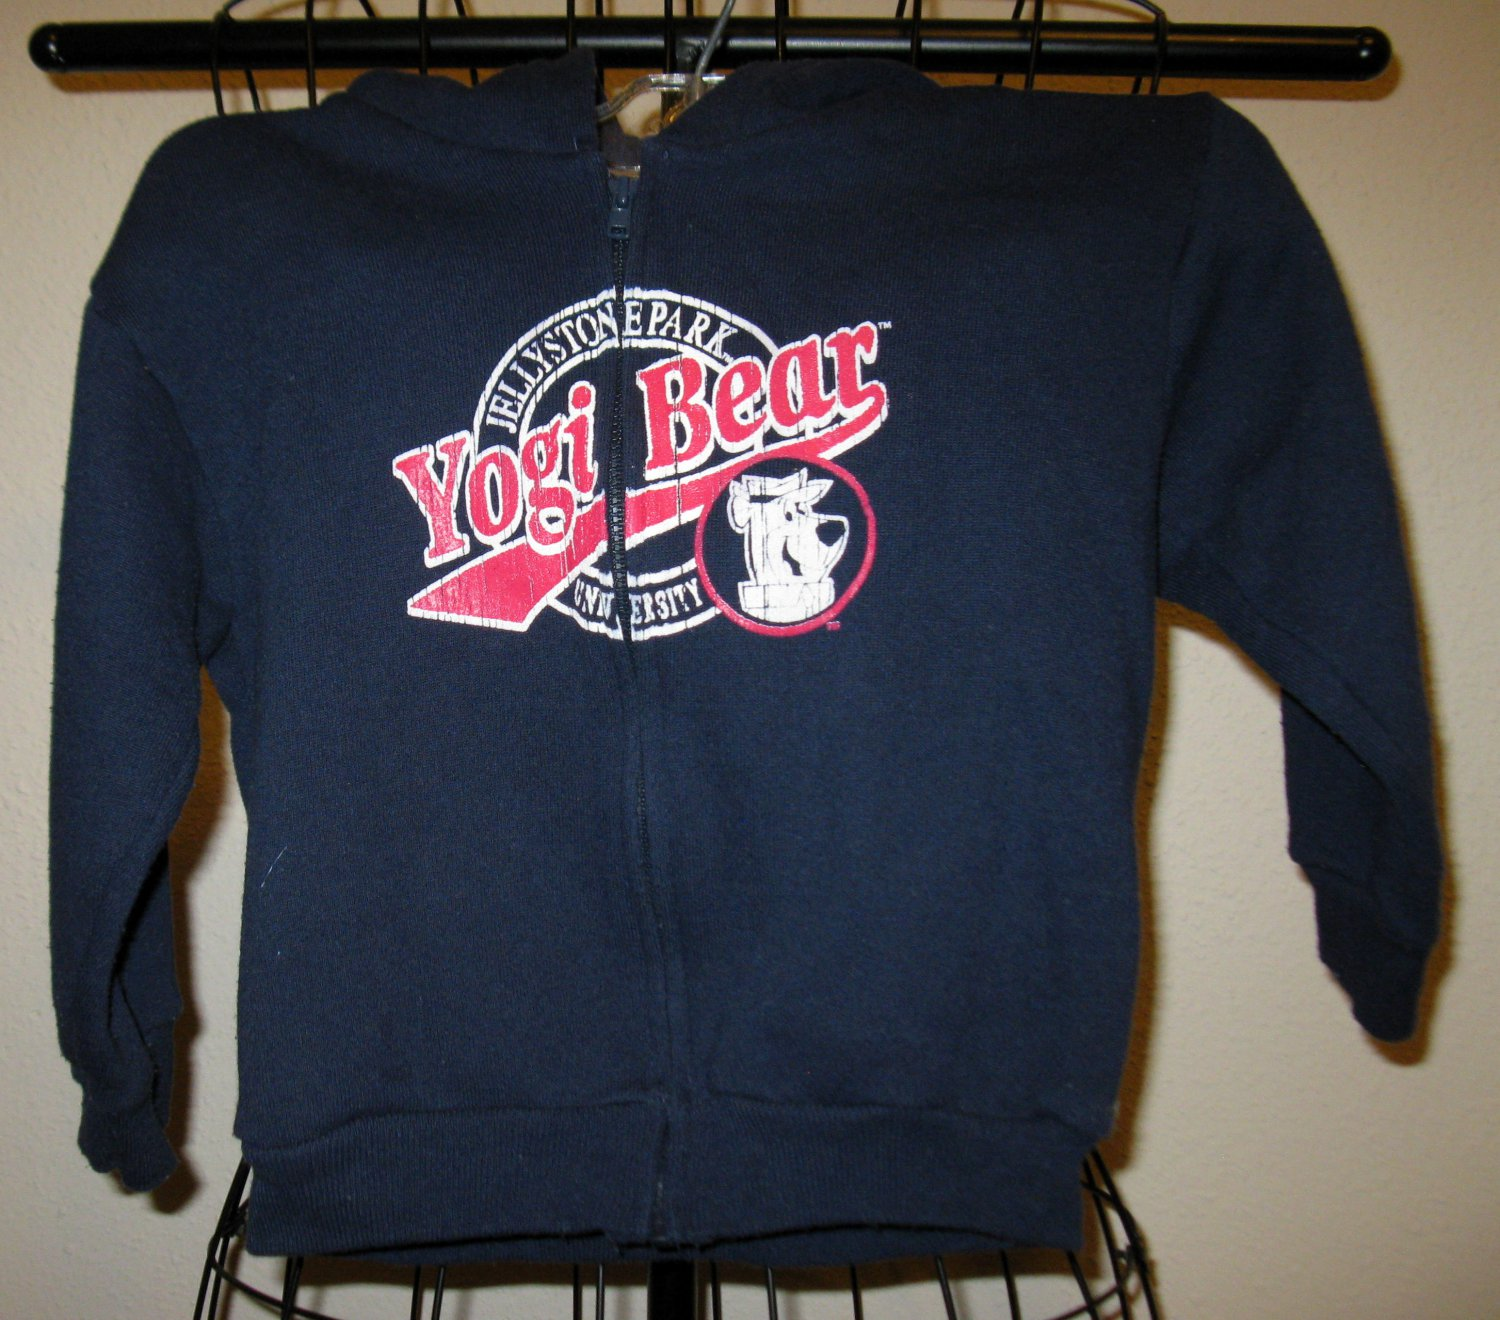 Navy Blue Yogi Bear Hoodie by Hanna Barbera Child Size 3T Nice! #X169